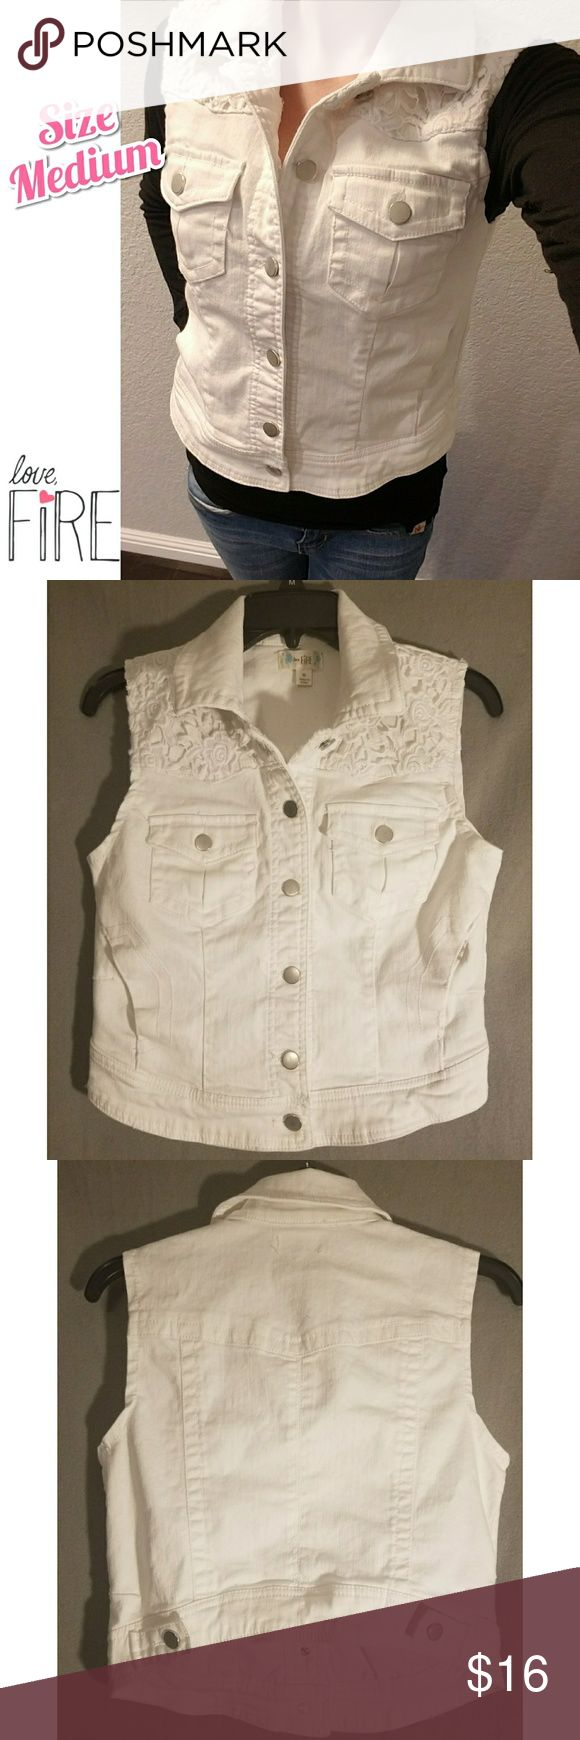 LIKE NEW White Denim Vest Great condition, basically new size medium white denim vest by Love, Fire from Nordstroms.  Never worn out & about, only tried on. Put into storage for a move & forgotten about. Perfect condition, no rips, holes, or stains.  All white demin with silver buttons, the top portion has floral lace style detailing, super cute. Made of thick good quality denim.  Originally purchased about a year ago for $34.99 from Nordstroms. Priced to sell!  Reasonable offers always…